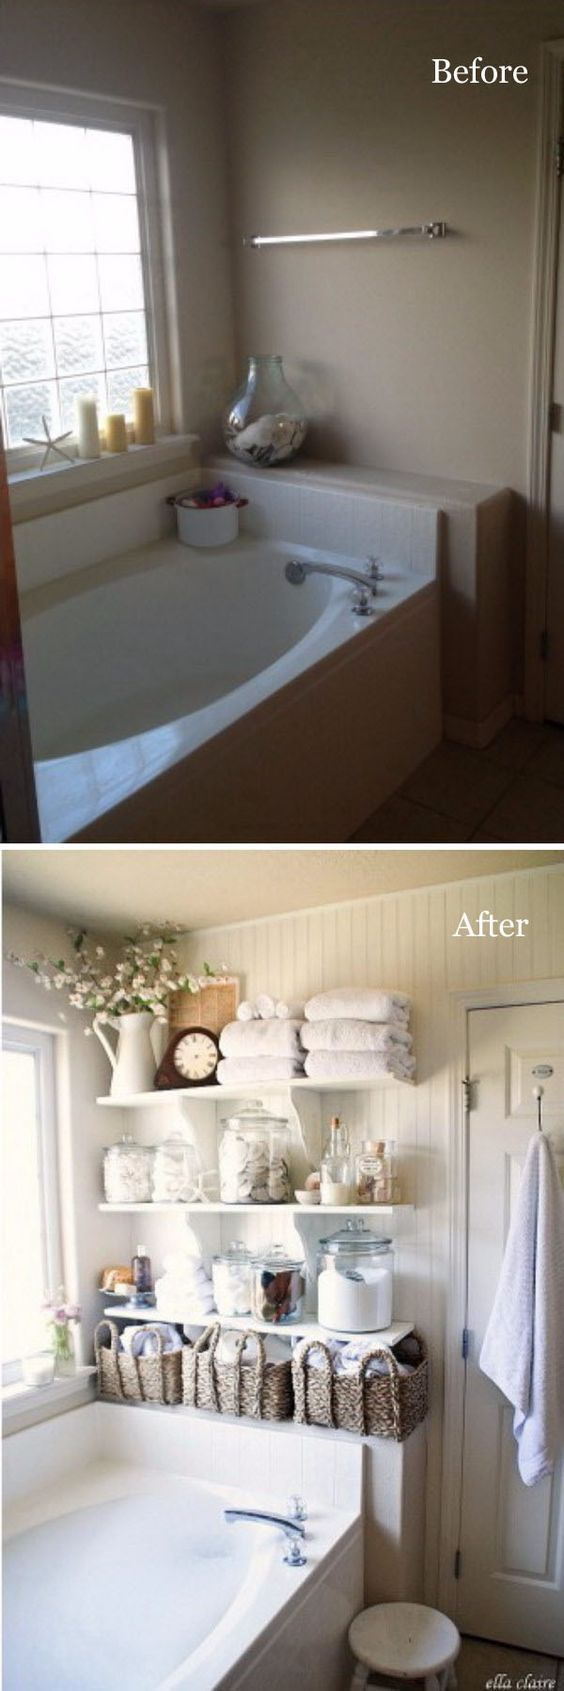 14 jaw dropping bathroom makeovers you gotta see - Design My Bathroom